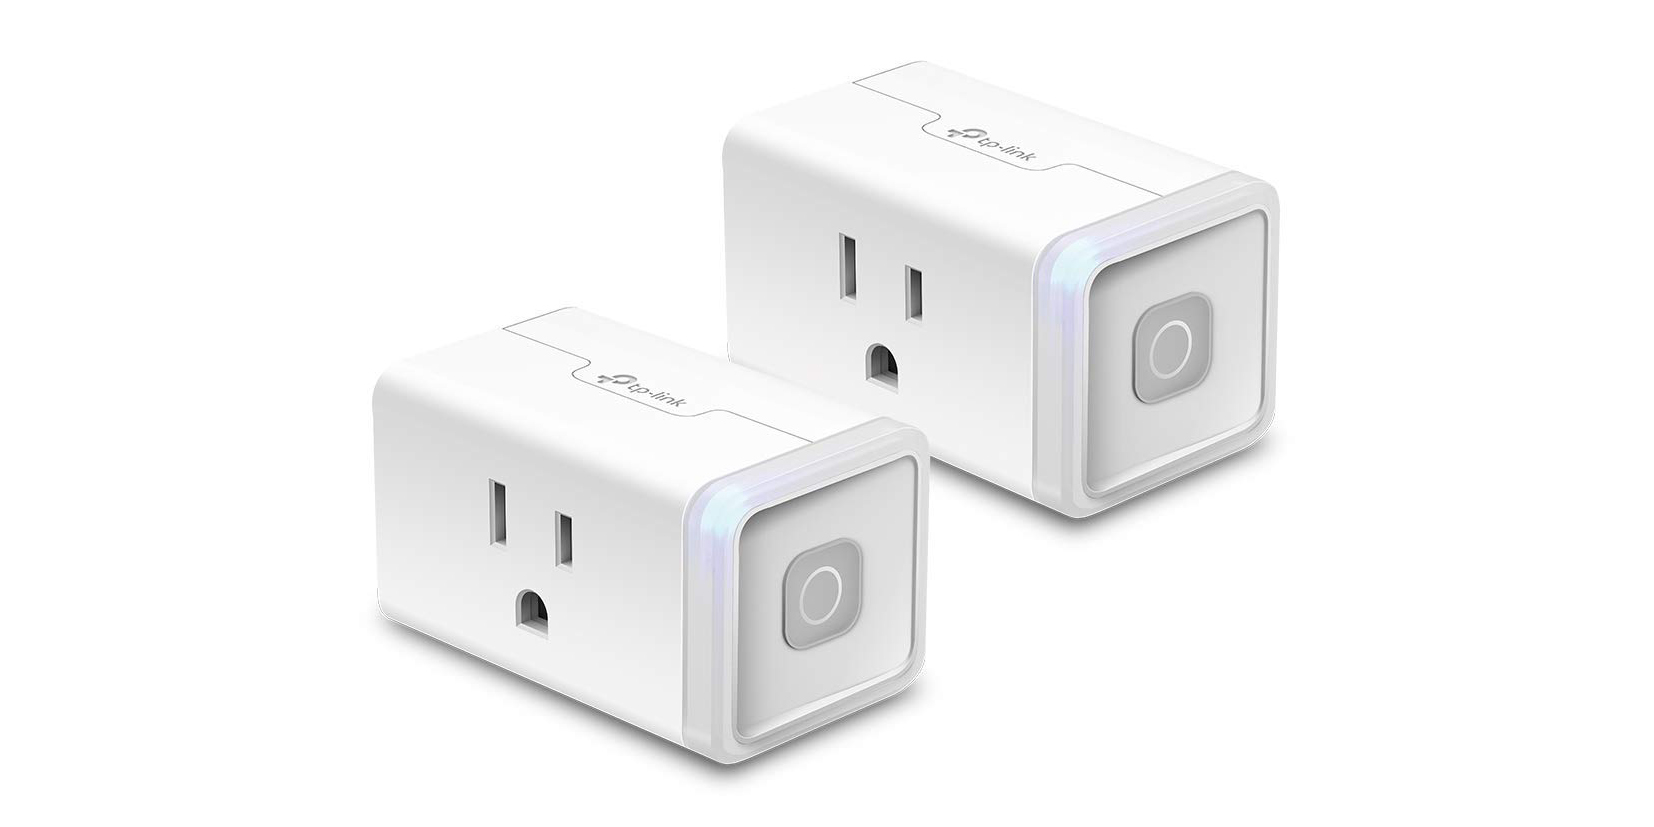 Enter the smart home world for $30 w/ a 2-pack of TP-Link Smart Plugs (25% off)